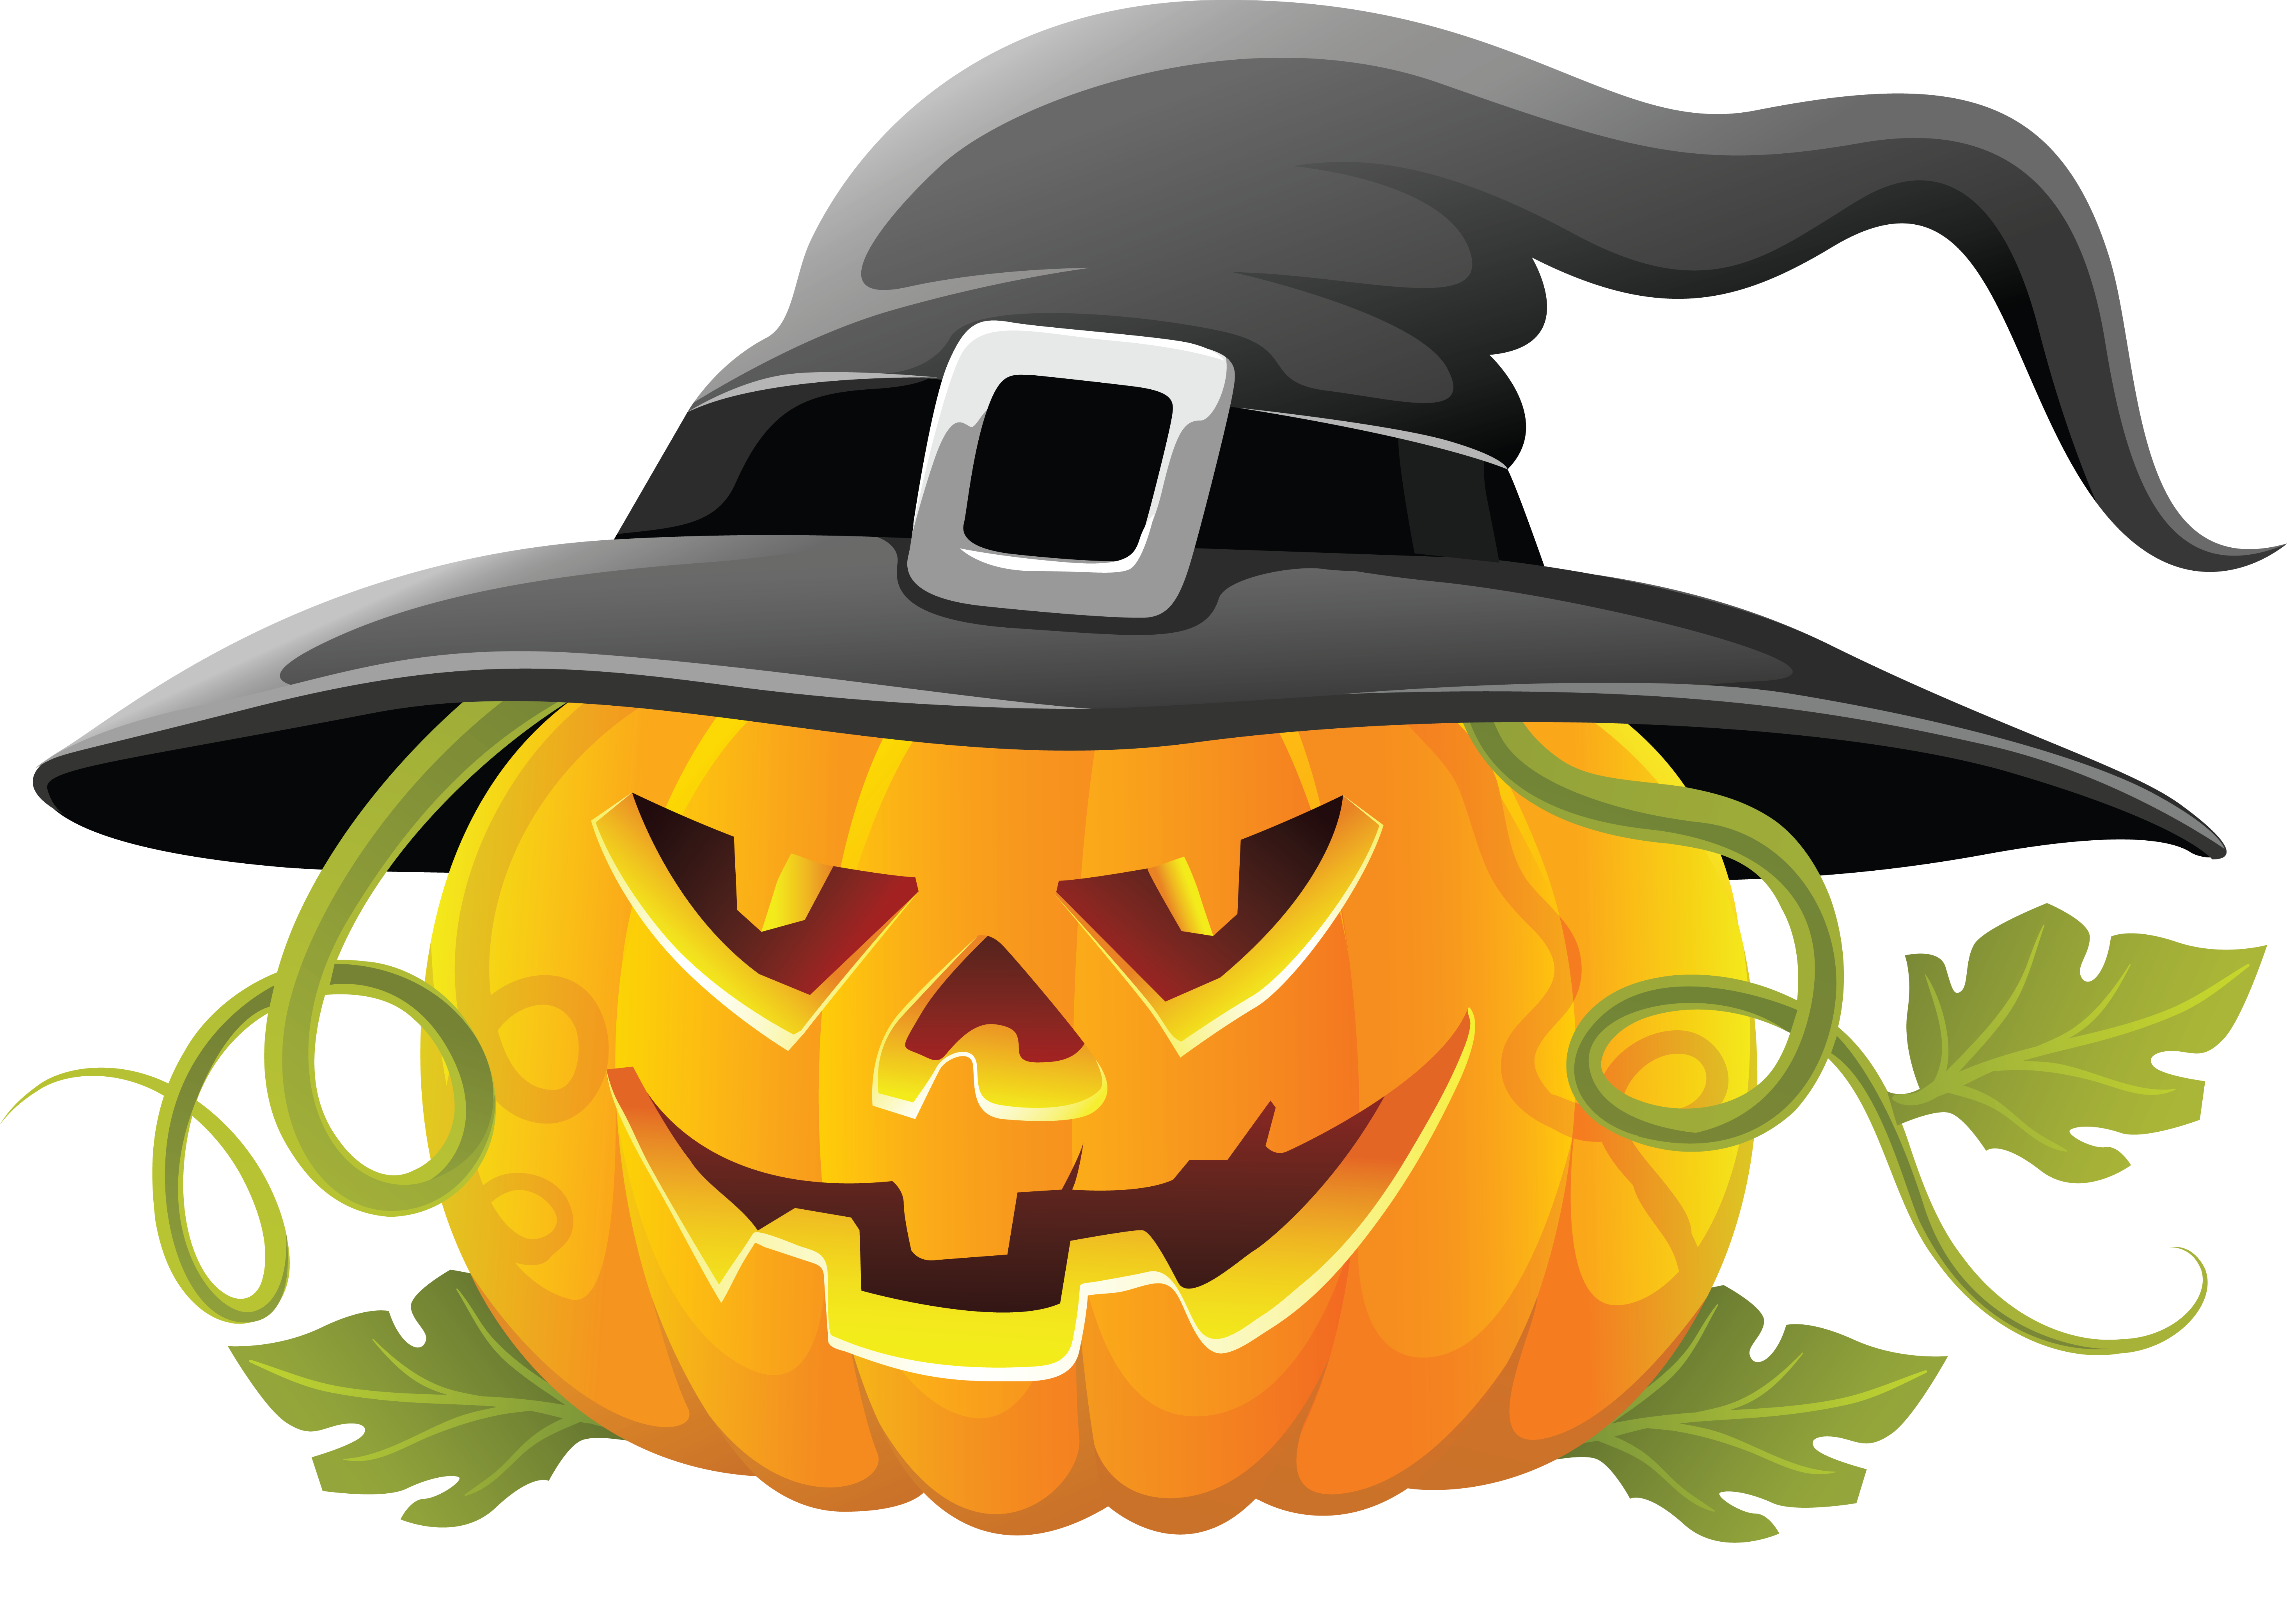 Download PNG image - Halloween Png Hd - Halloween PNG